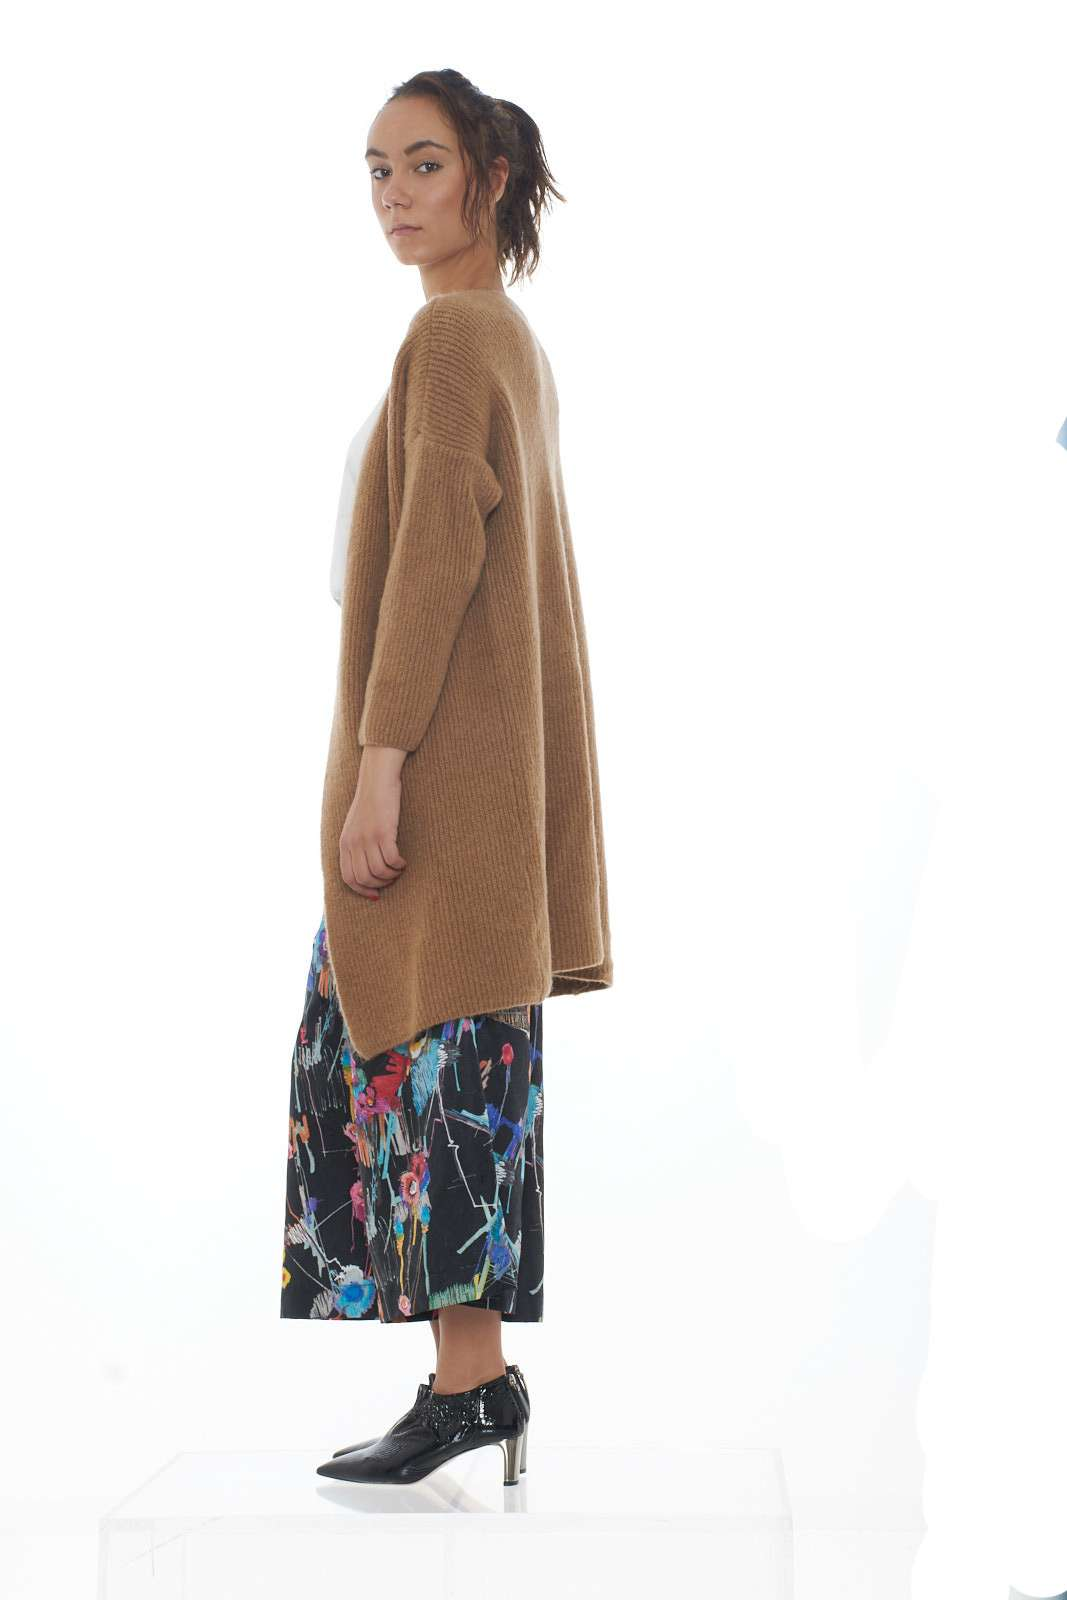 https://www.parmax.com/media/catalog/product/a/i/AI-outlet_parmax-cardigan-donna-Suf%C3%A8-SF2254-B.jpg